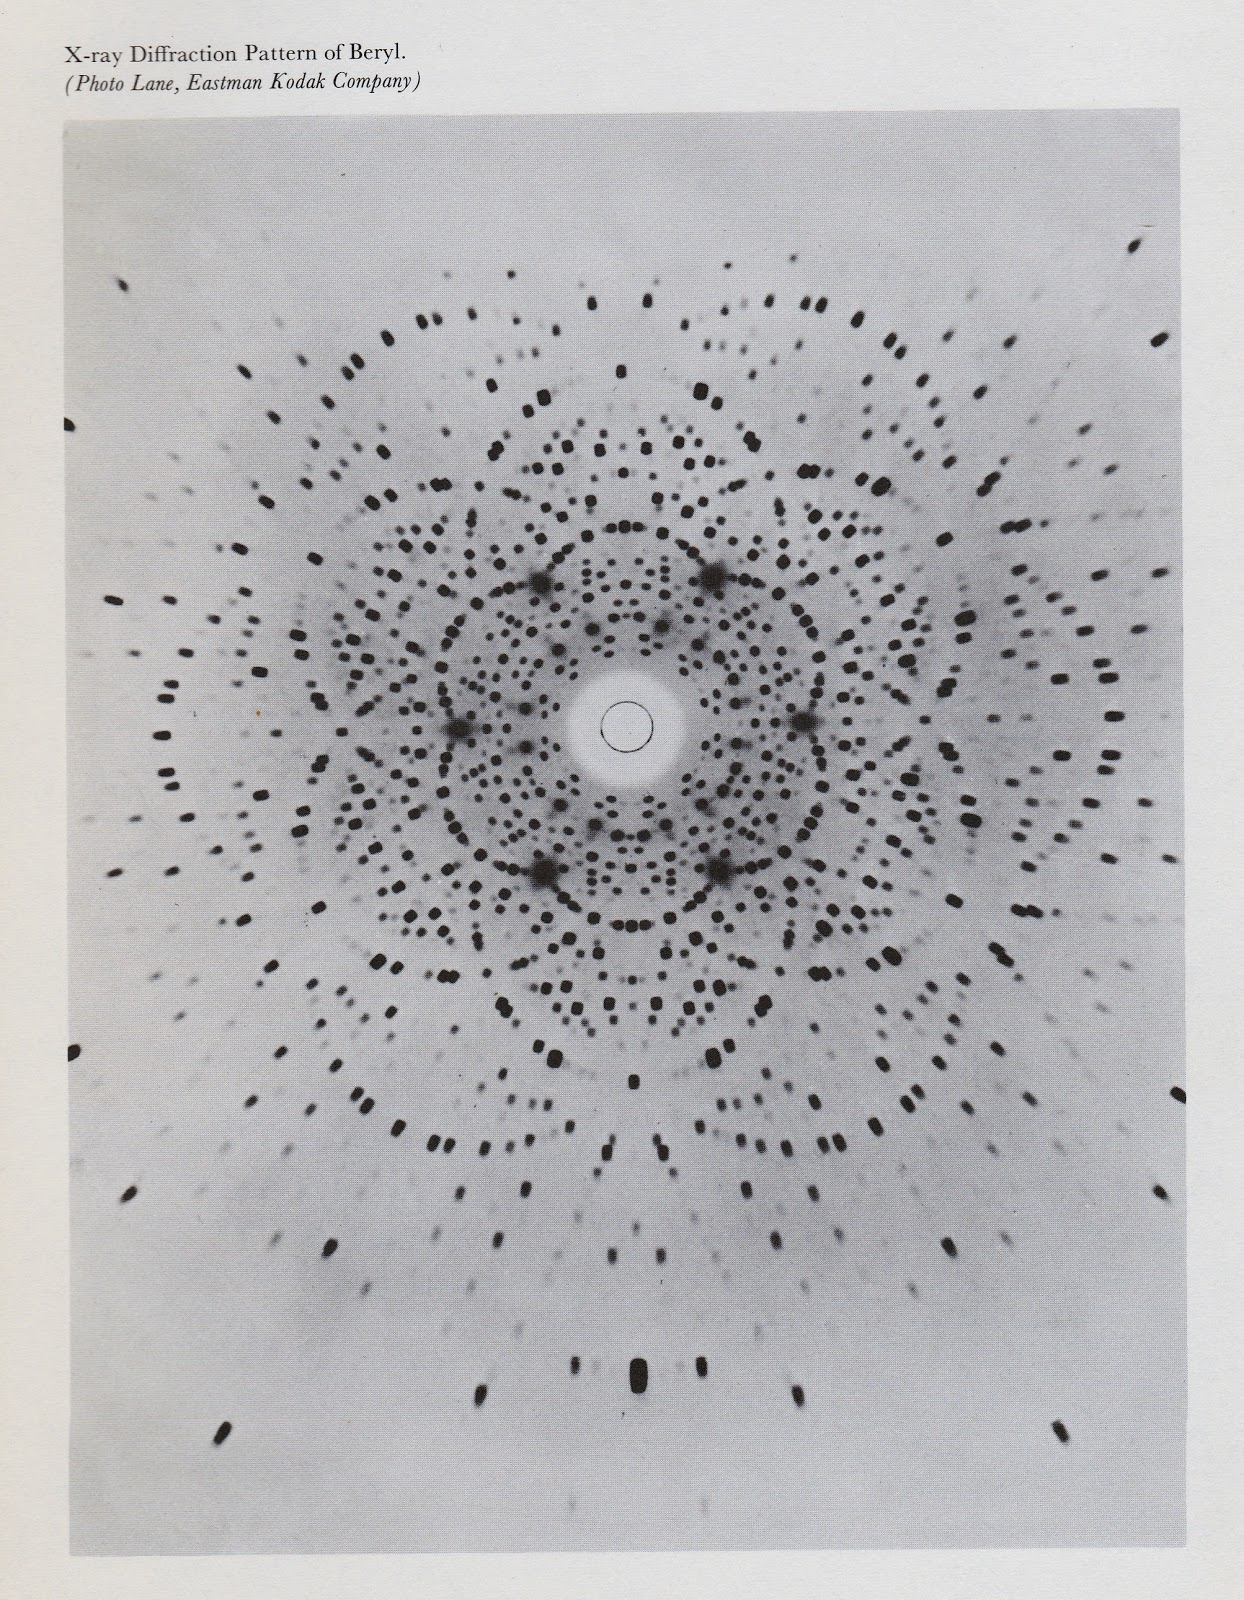 Images scanned from   Structures in Art and in Science   Edited by Gyorgy Kepes   Published 1965 by George Braziller, Inc.